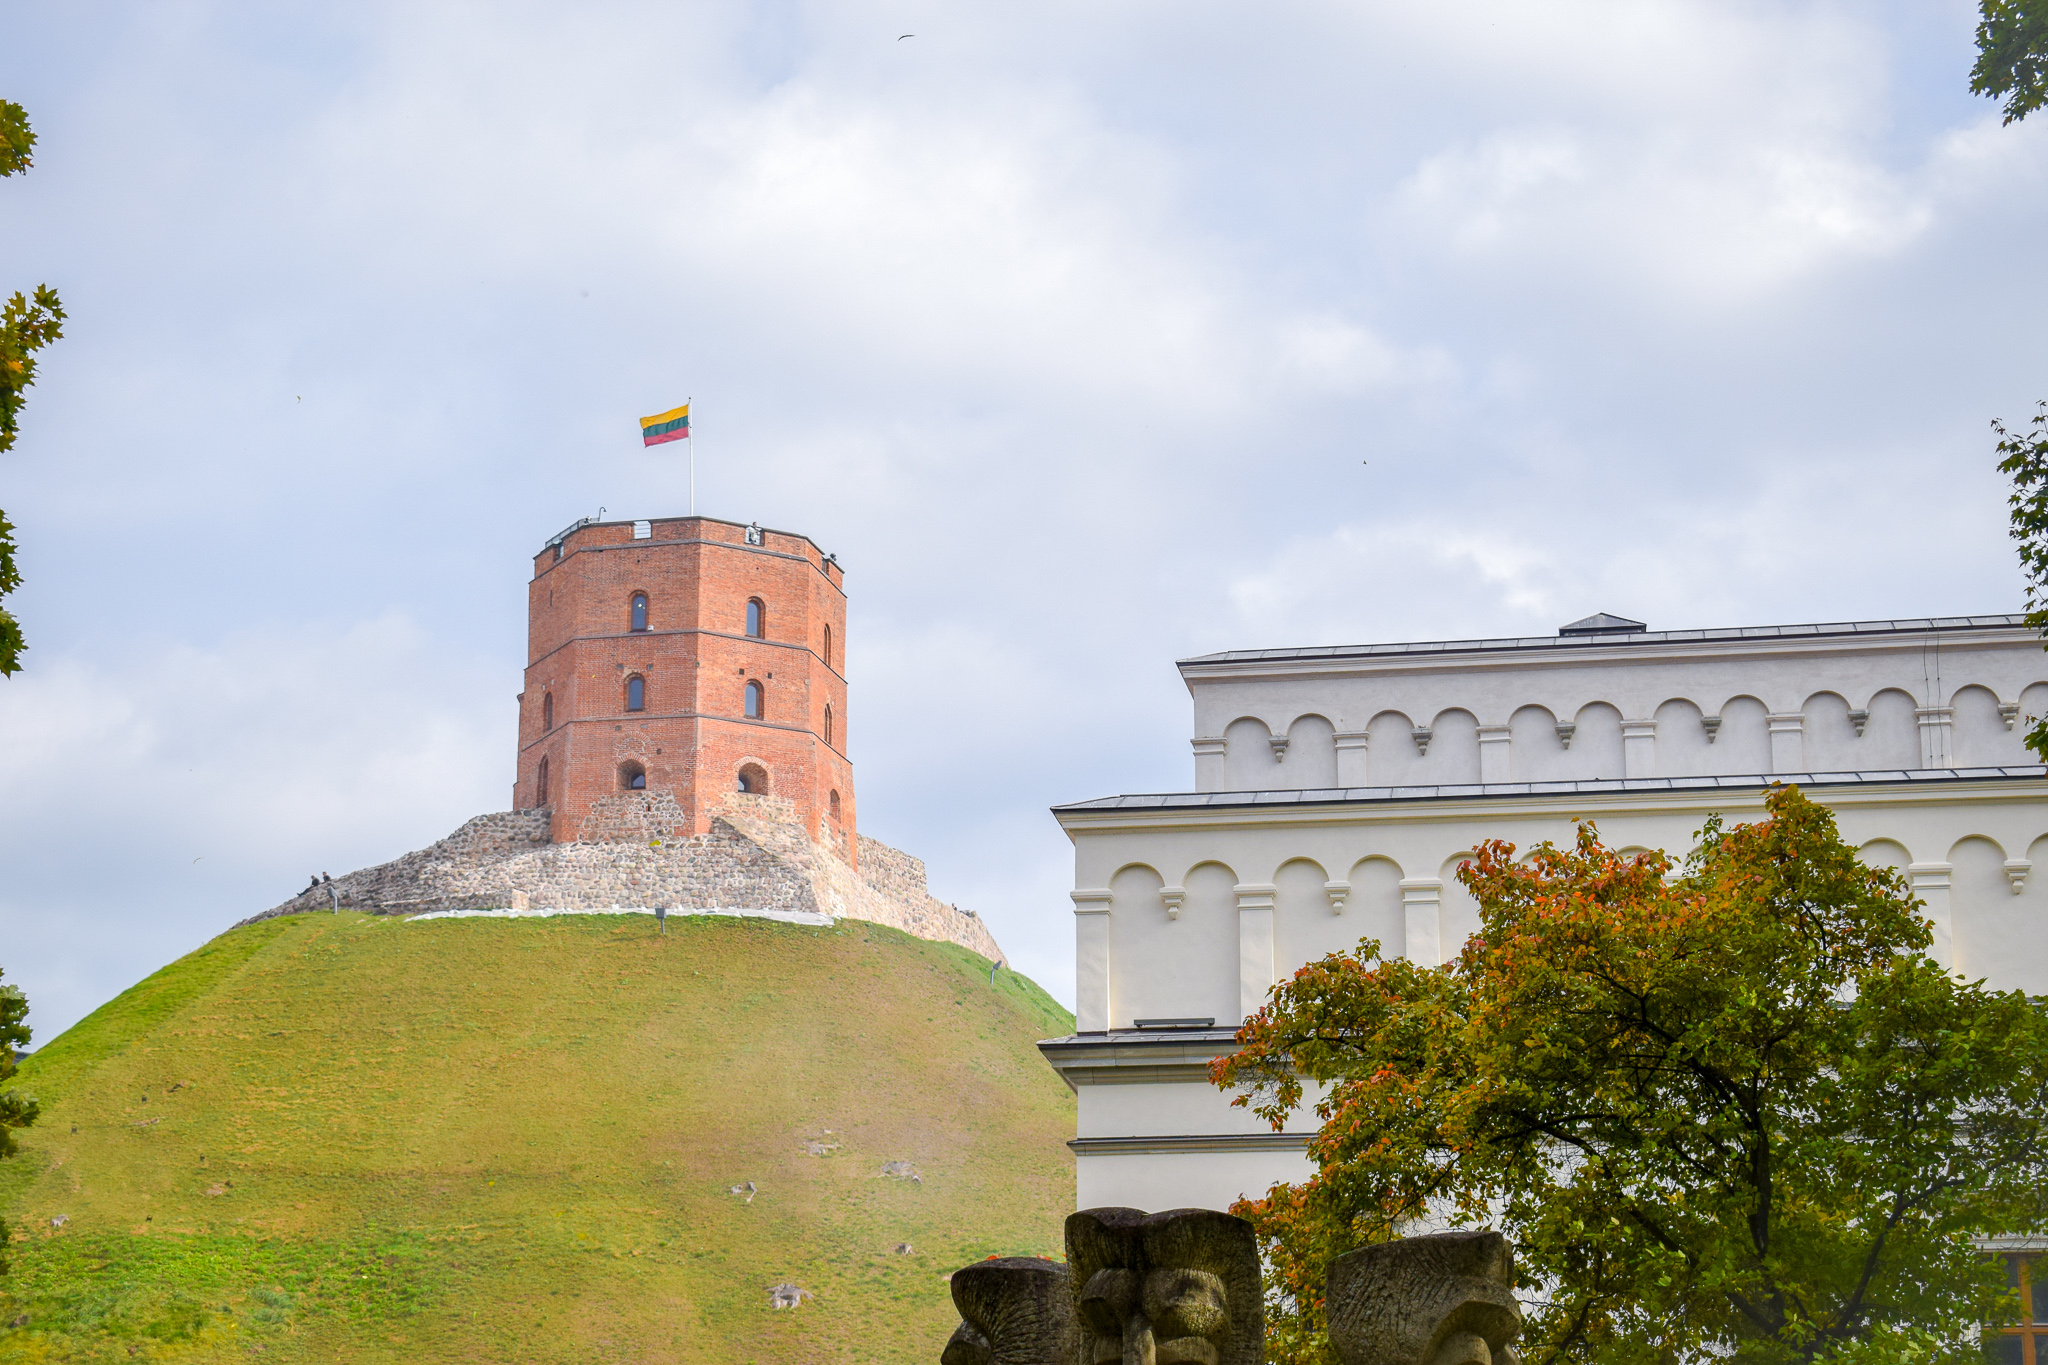 Gediminas' Tower stands proudly on Castle Hill in Vilnius, Lithuania.